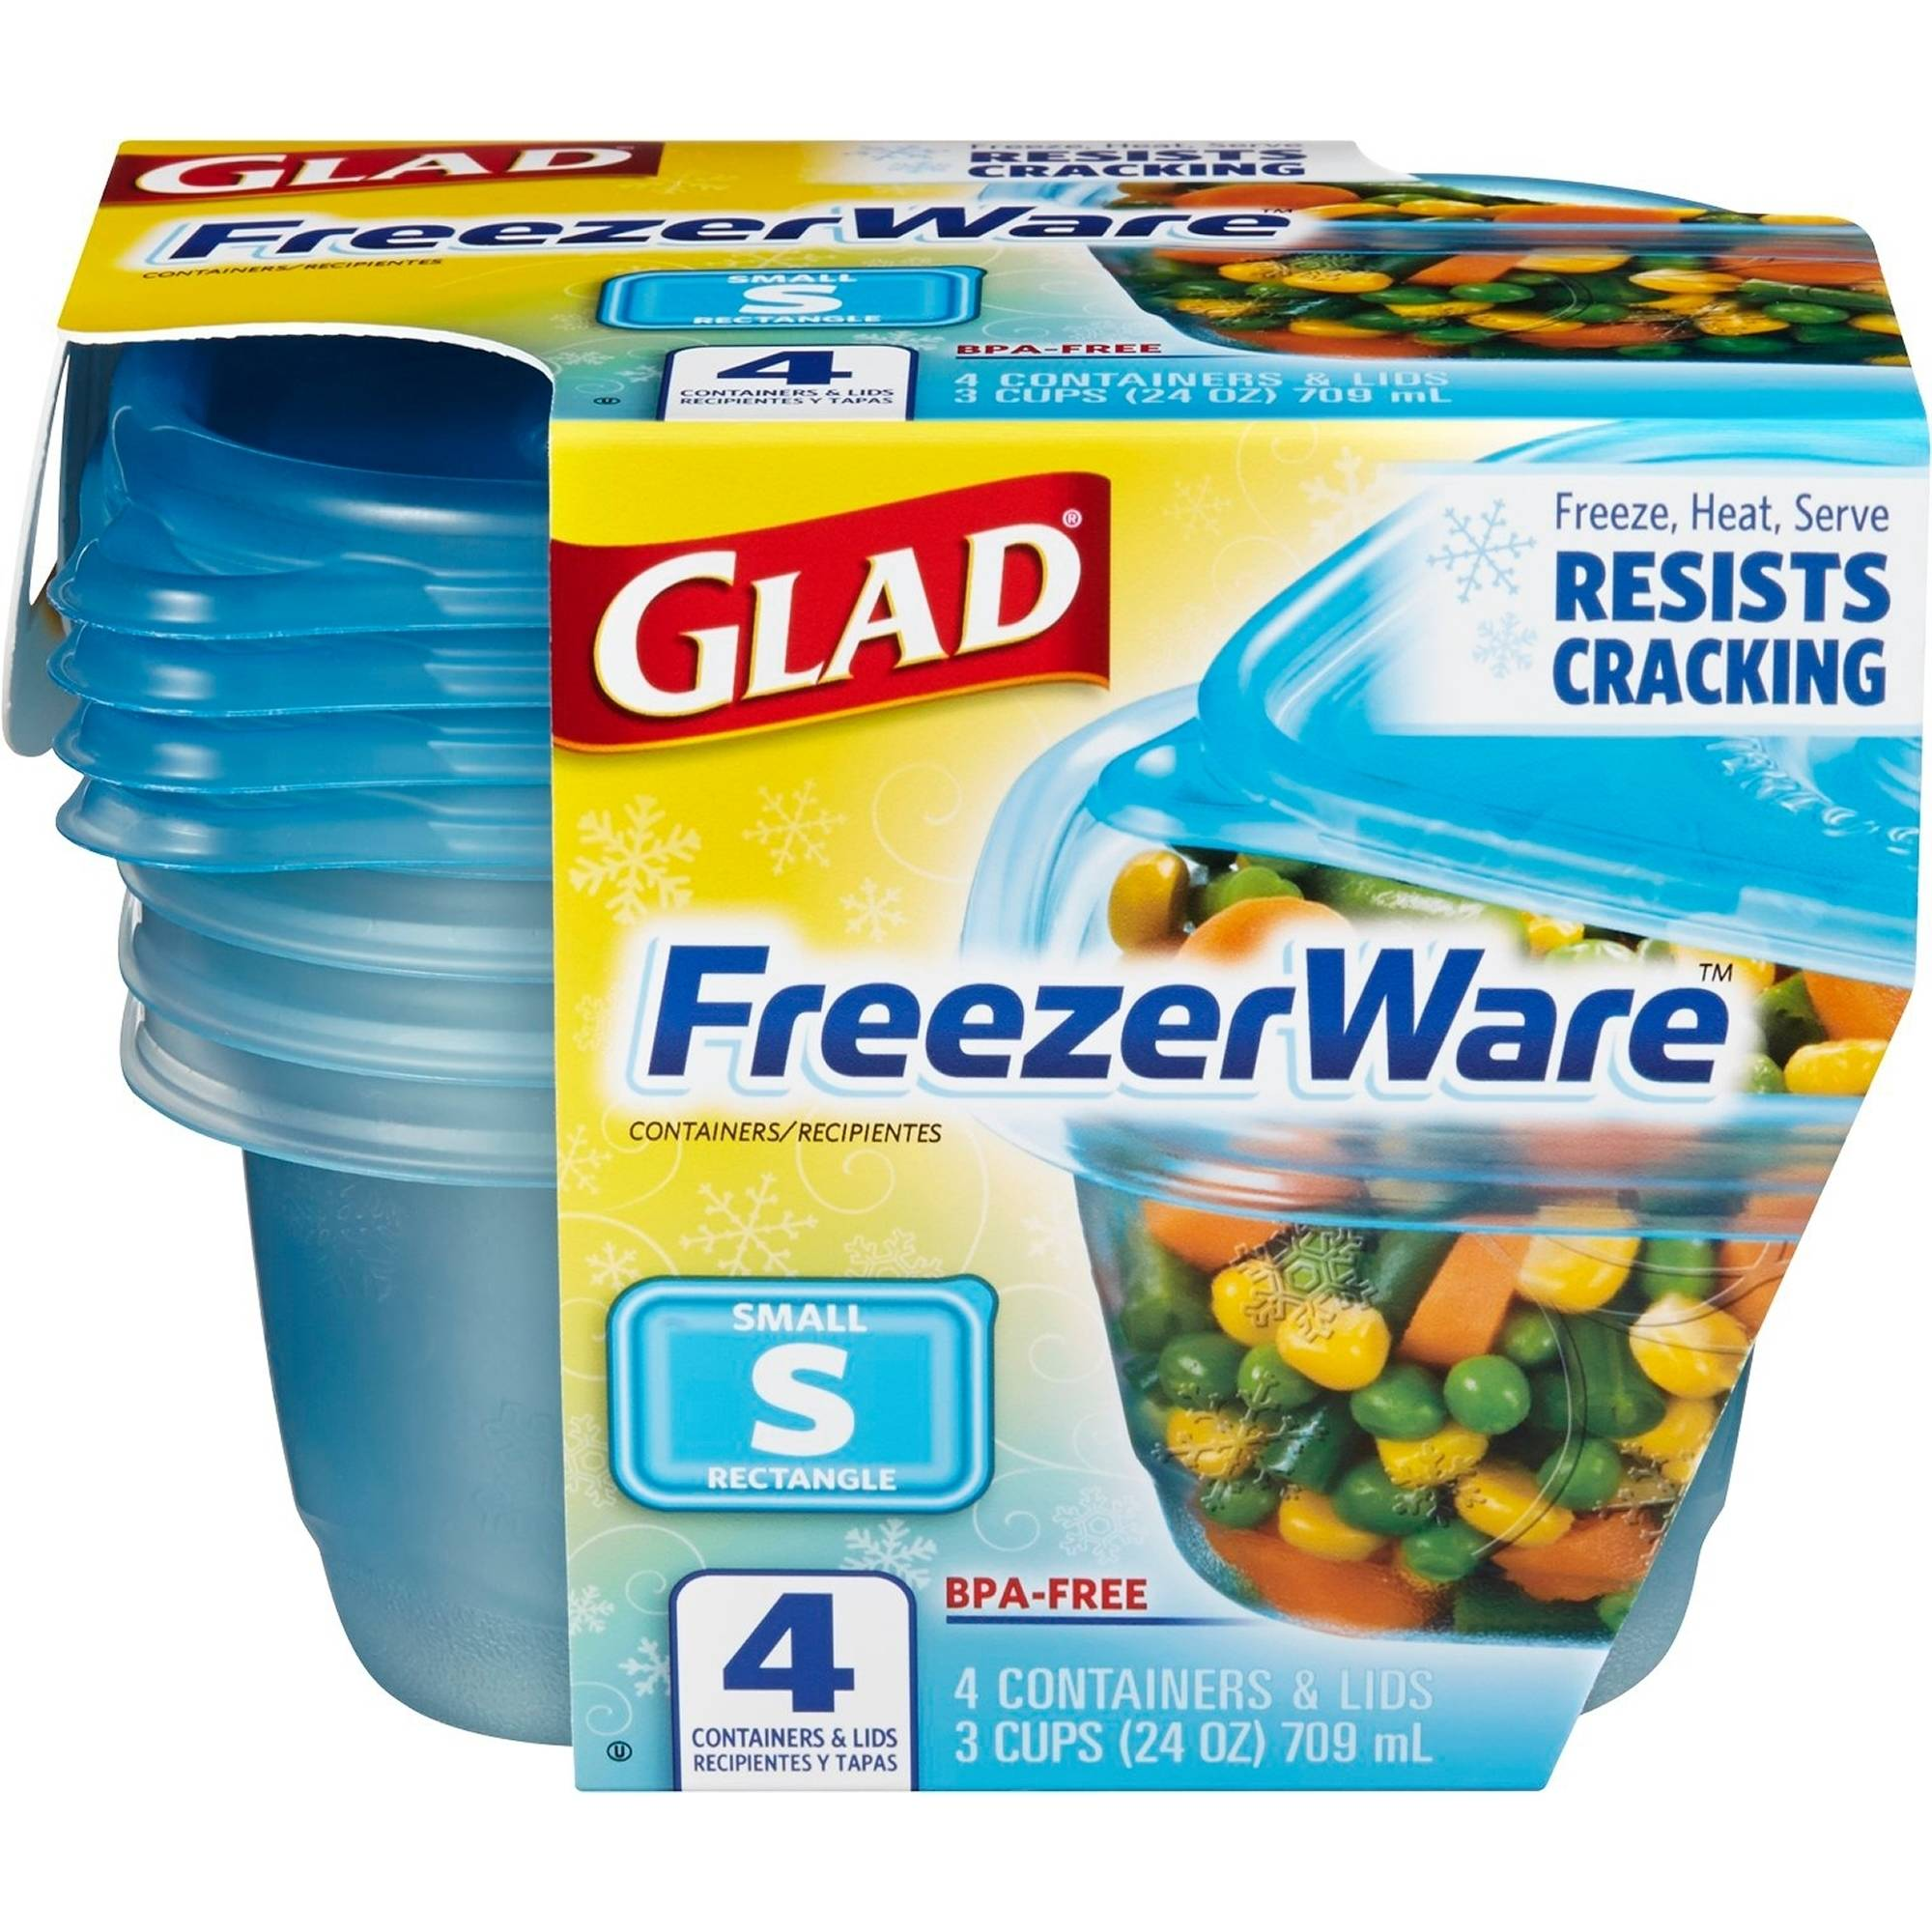 Glad Food Storage Containers, FreezerWare, Small, 24 oz, 4 Count, BPA Free